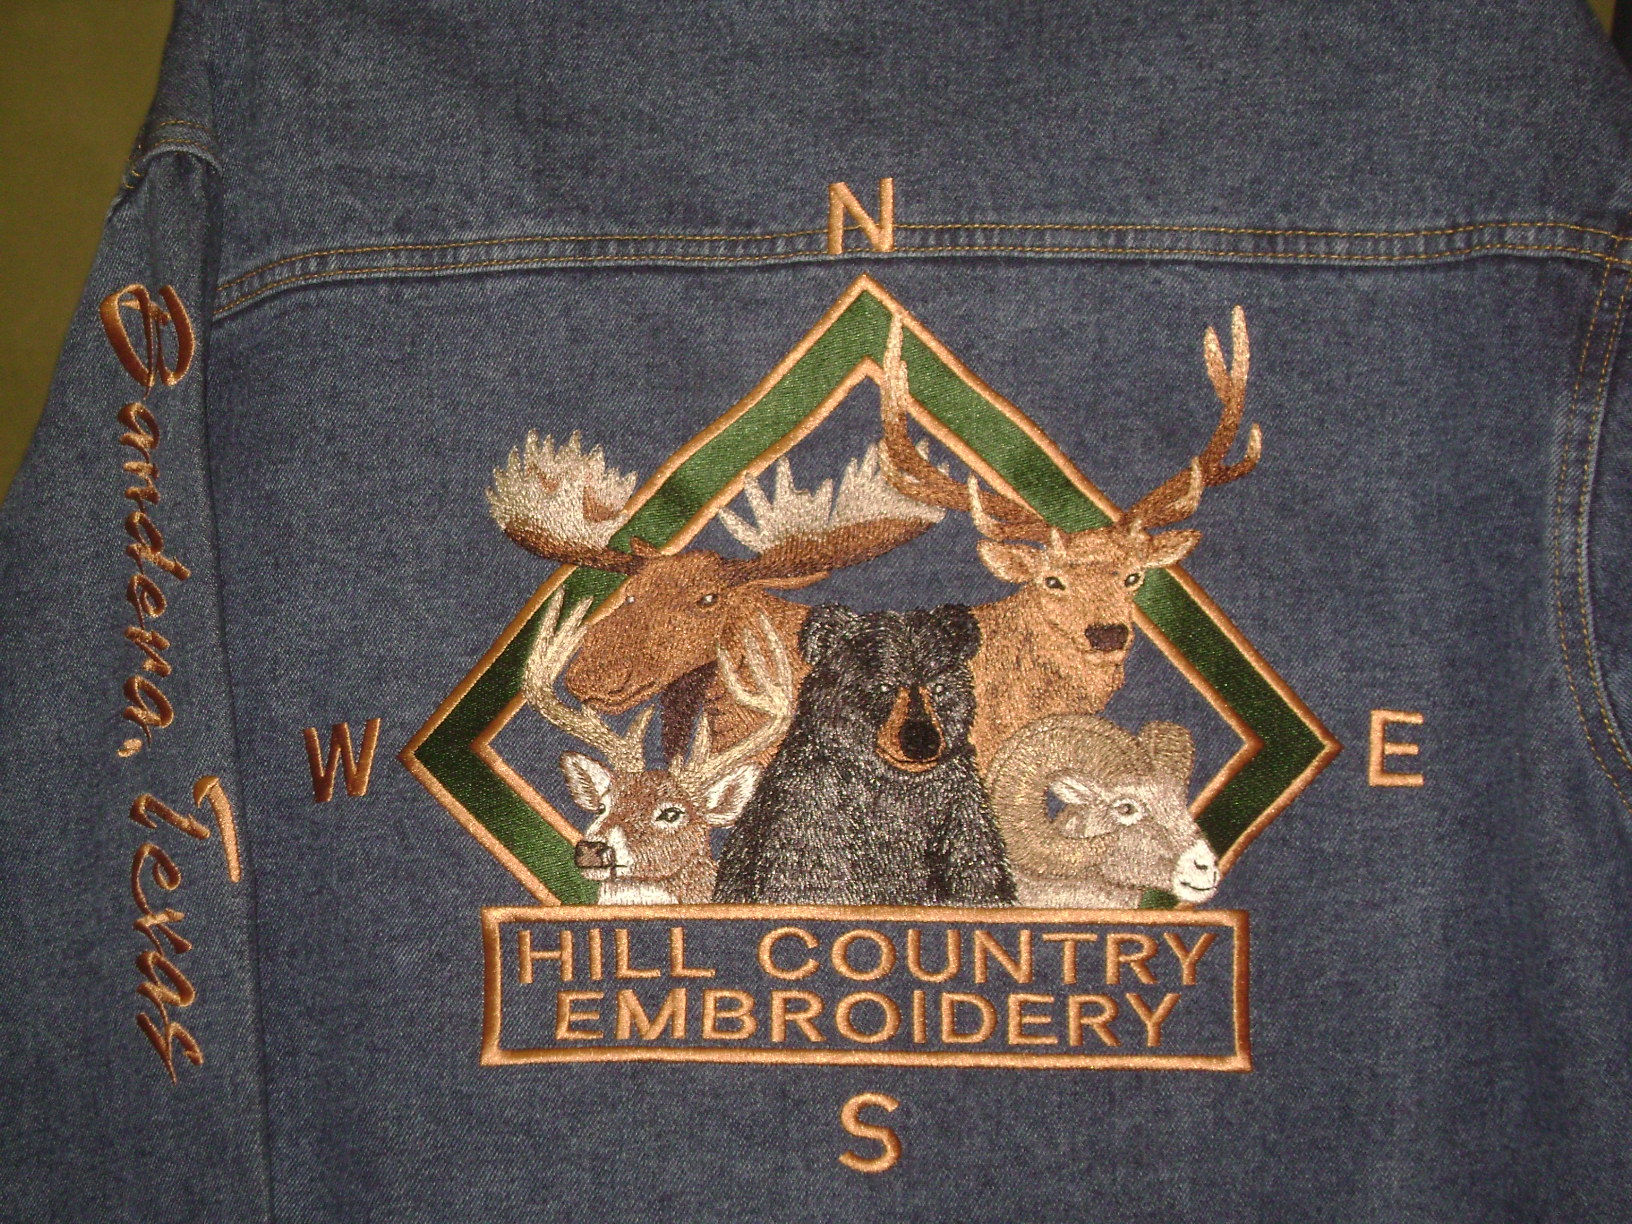 Hill Country Embroidery - Bandera, Texas - Custom Embroidery